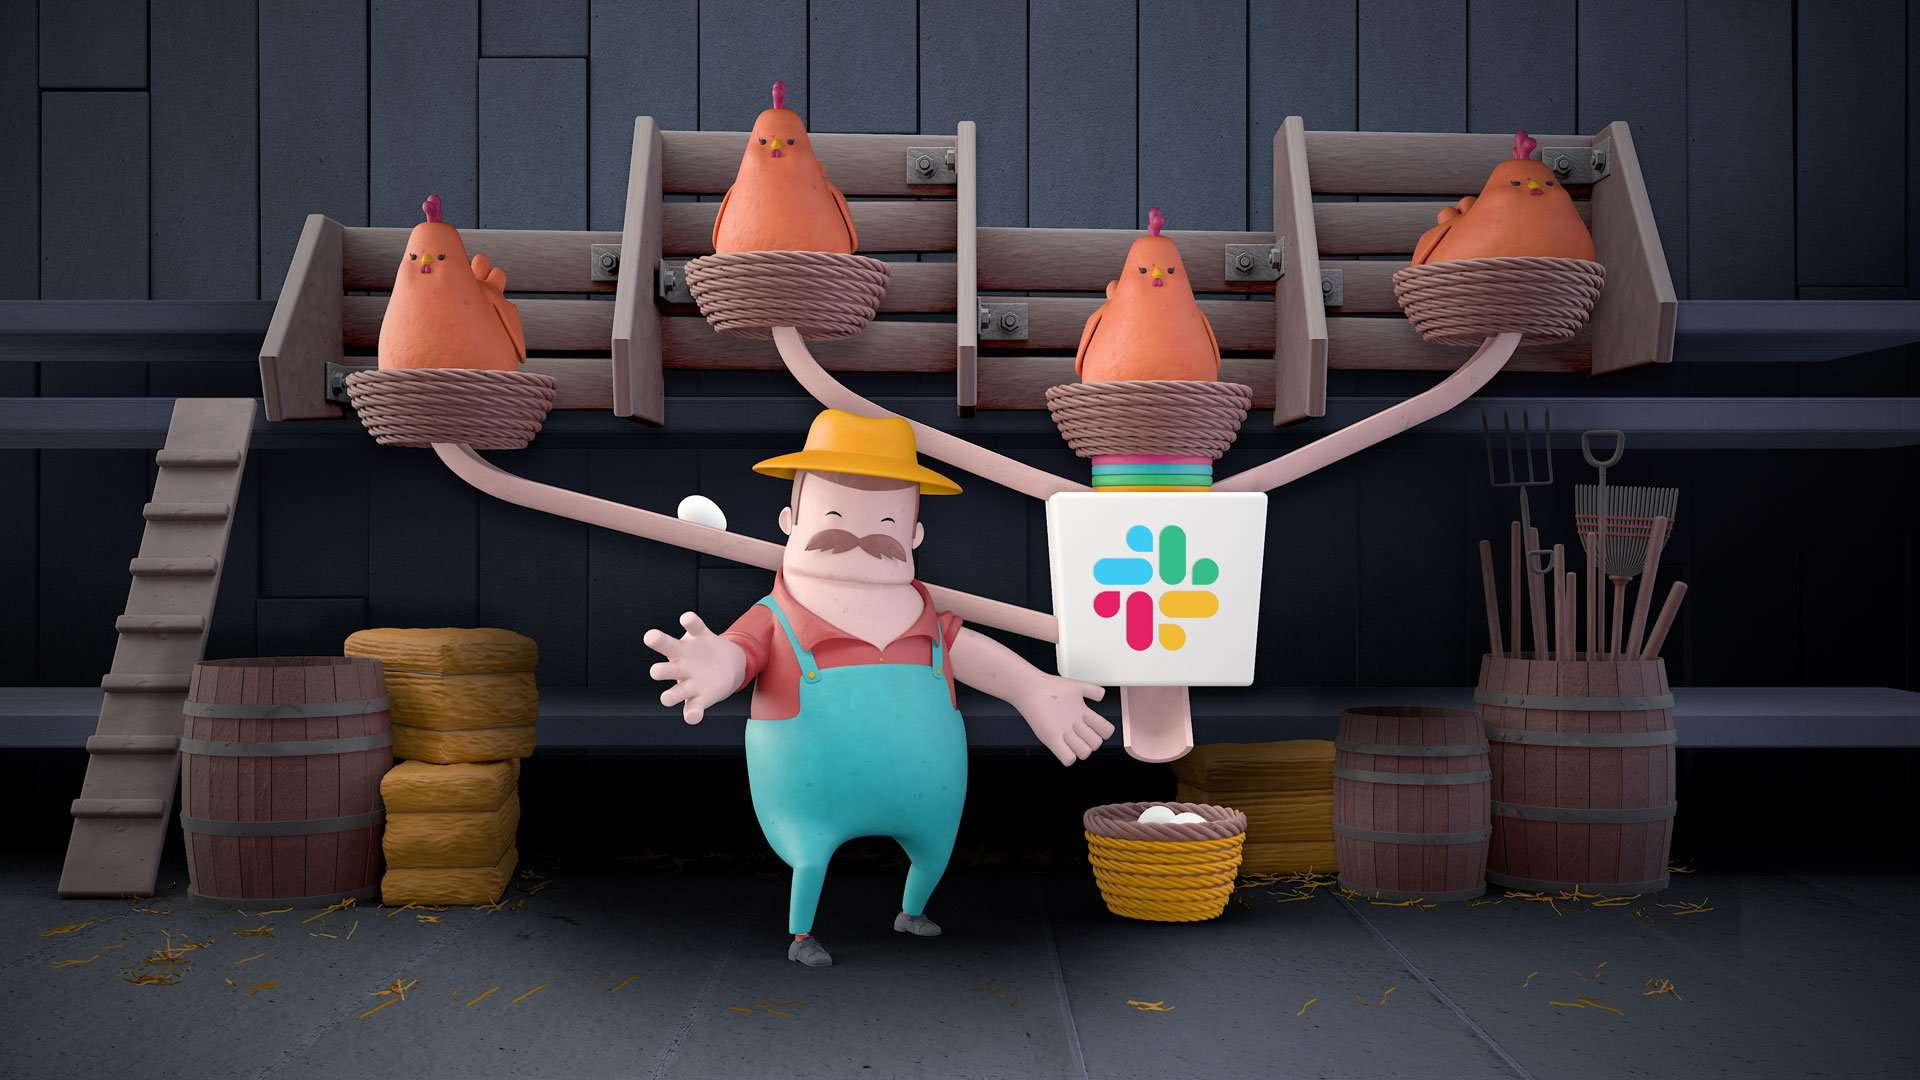 To be a small shot in larger animation about Slack services